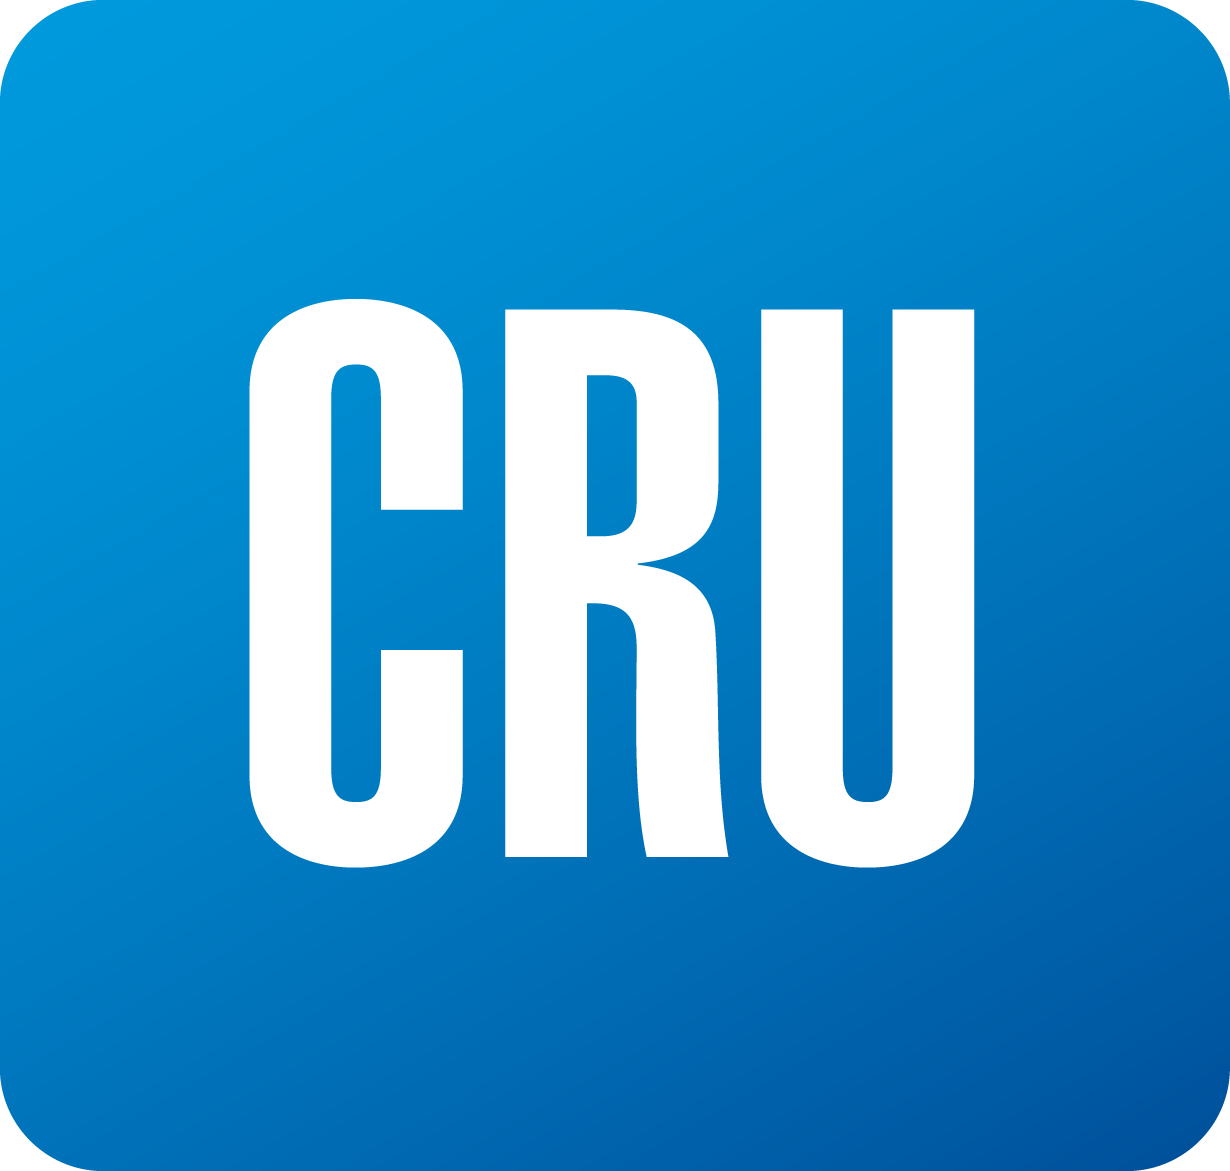 CRU GROUP LOGO